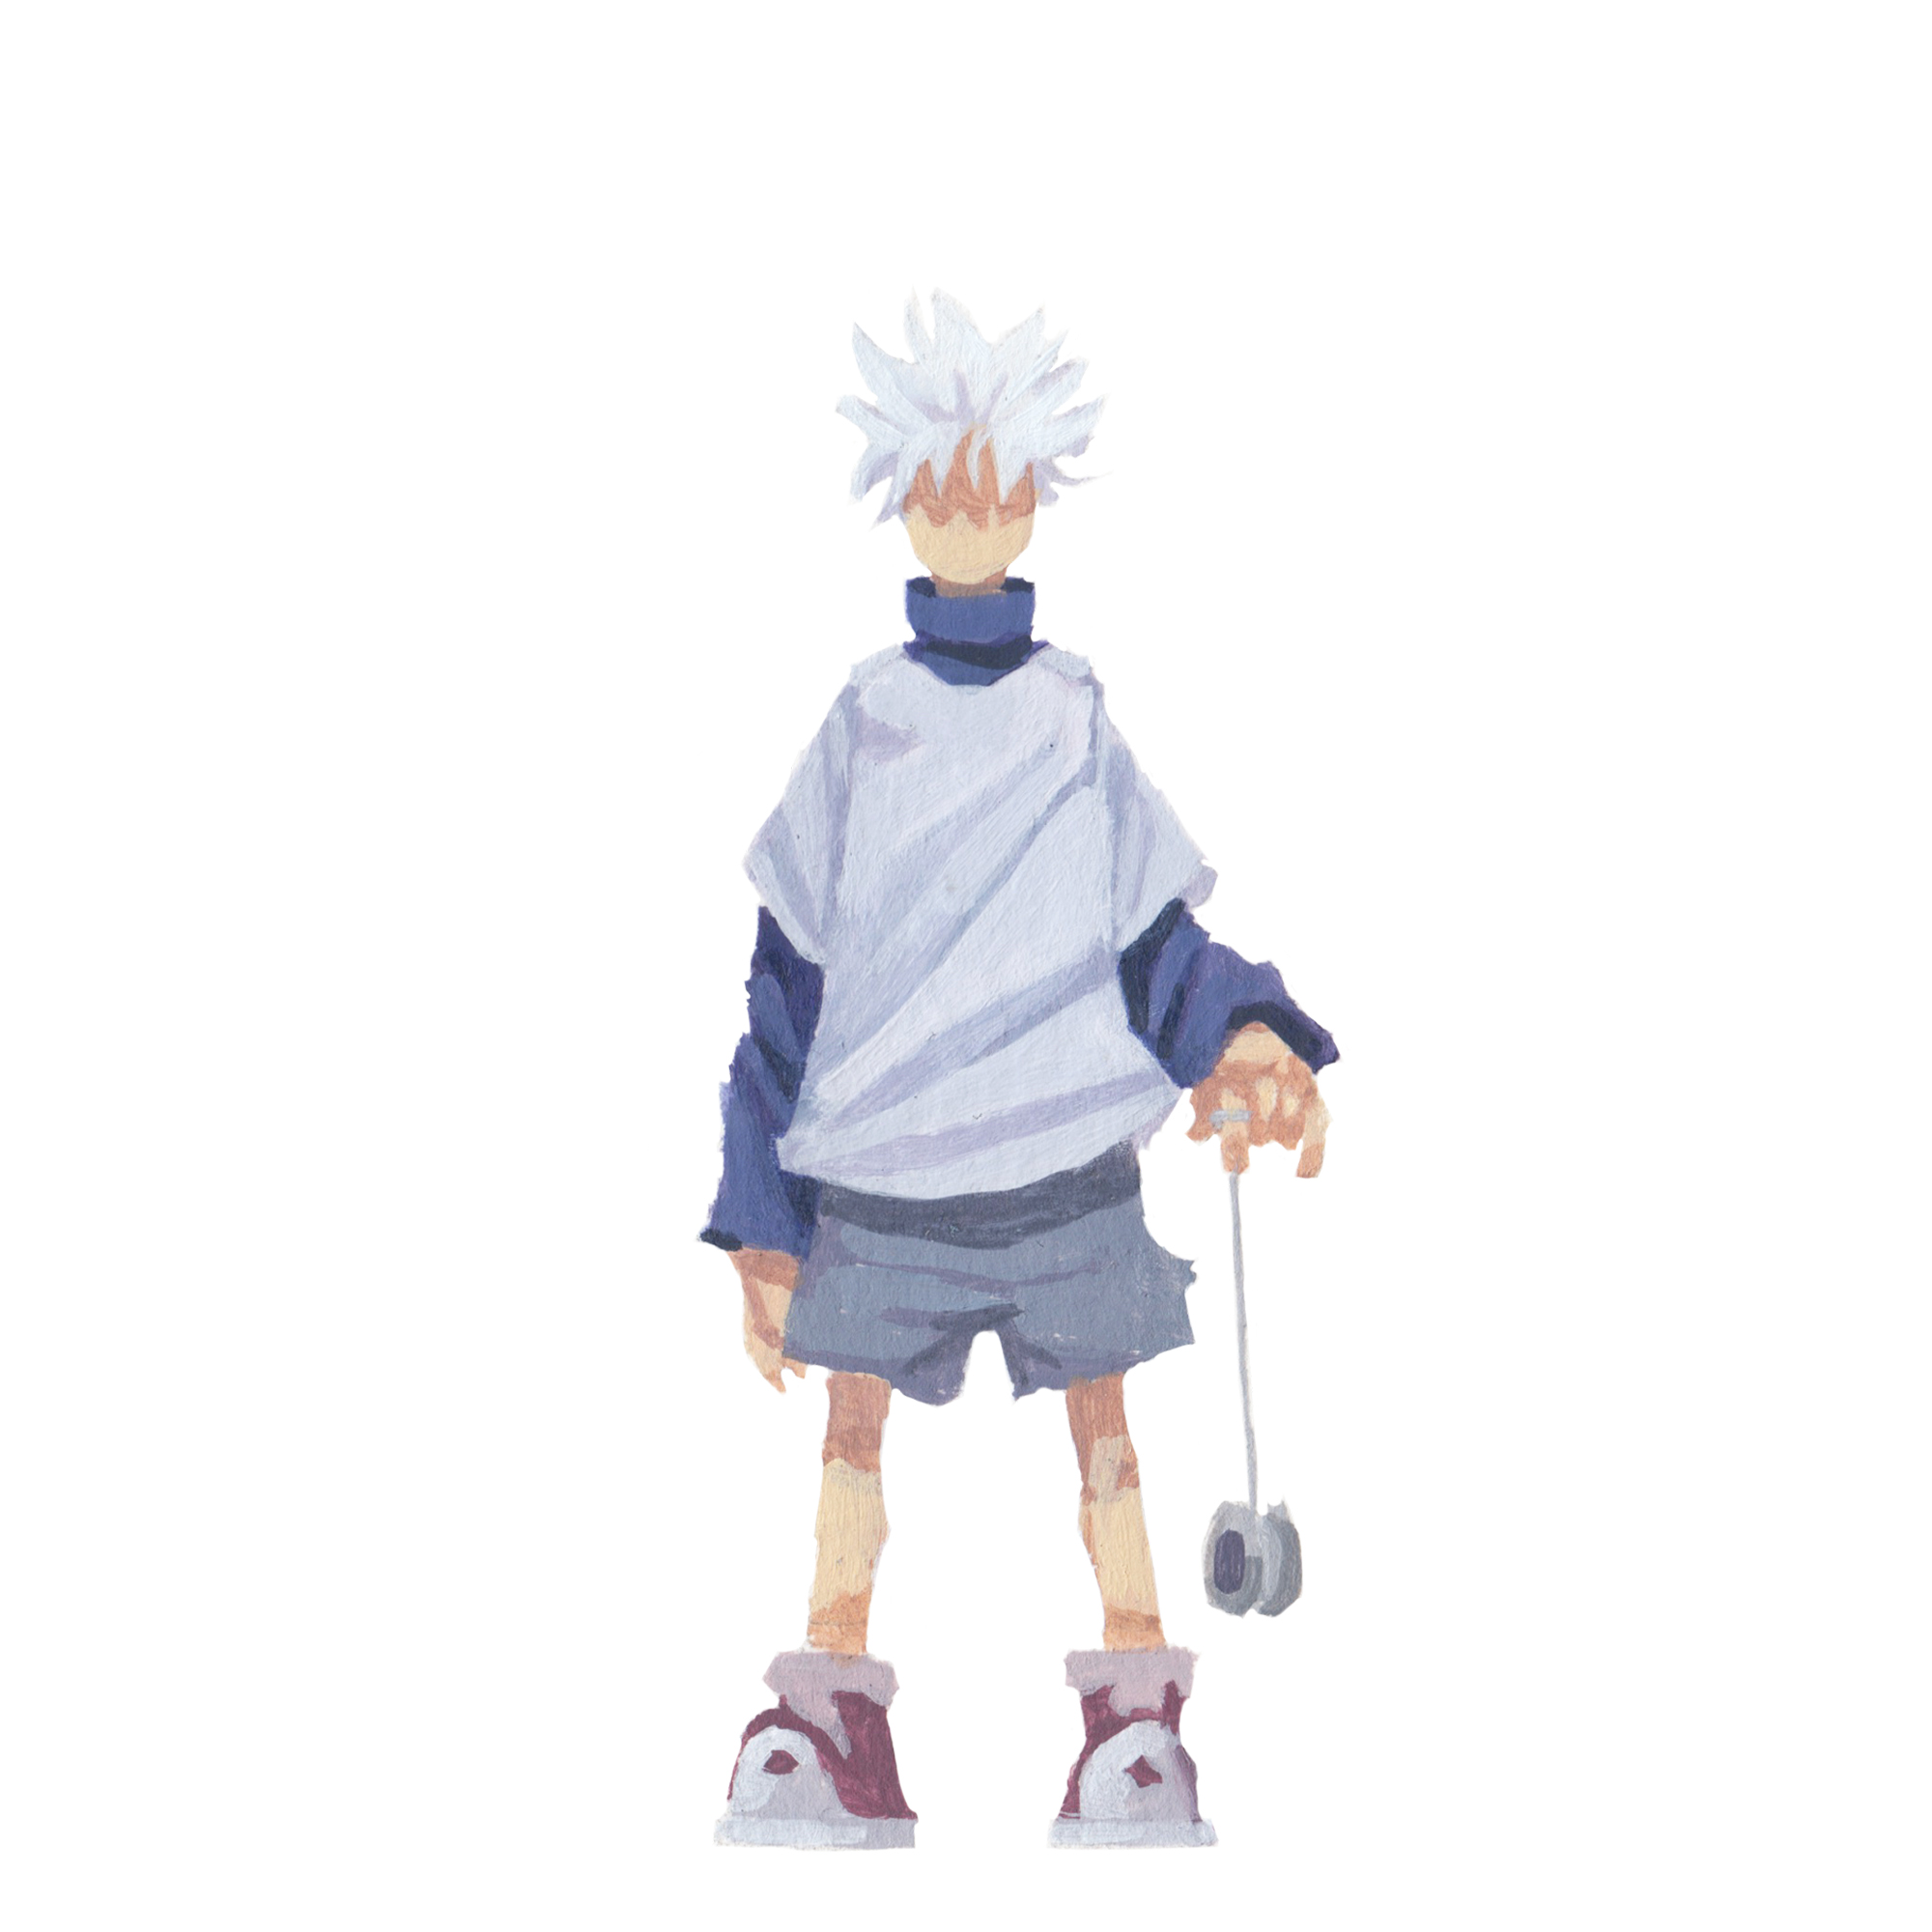 HunterxHunter_003